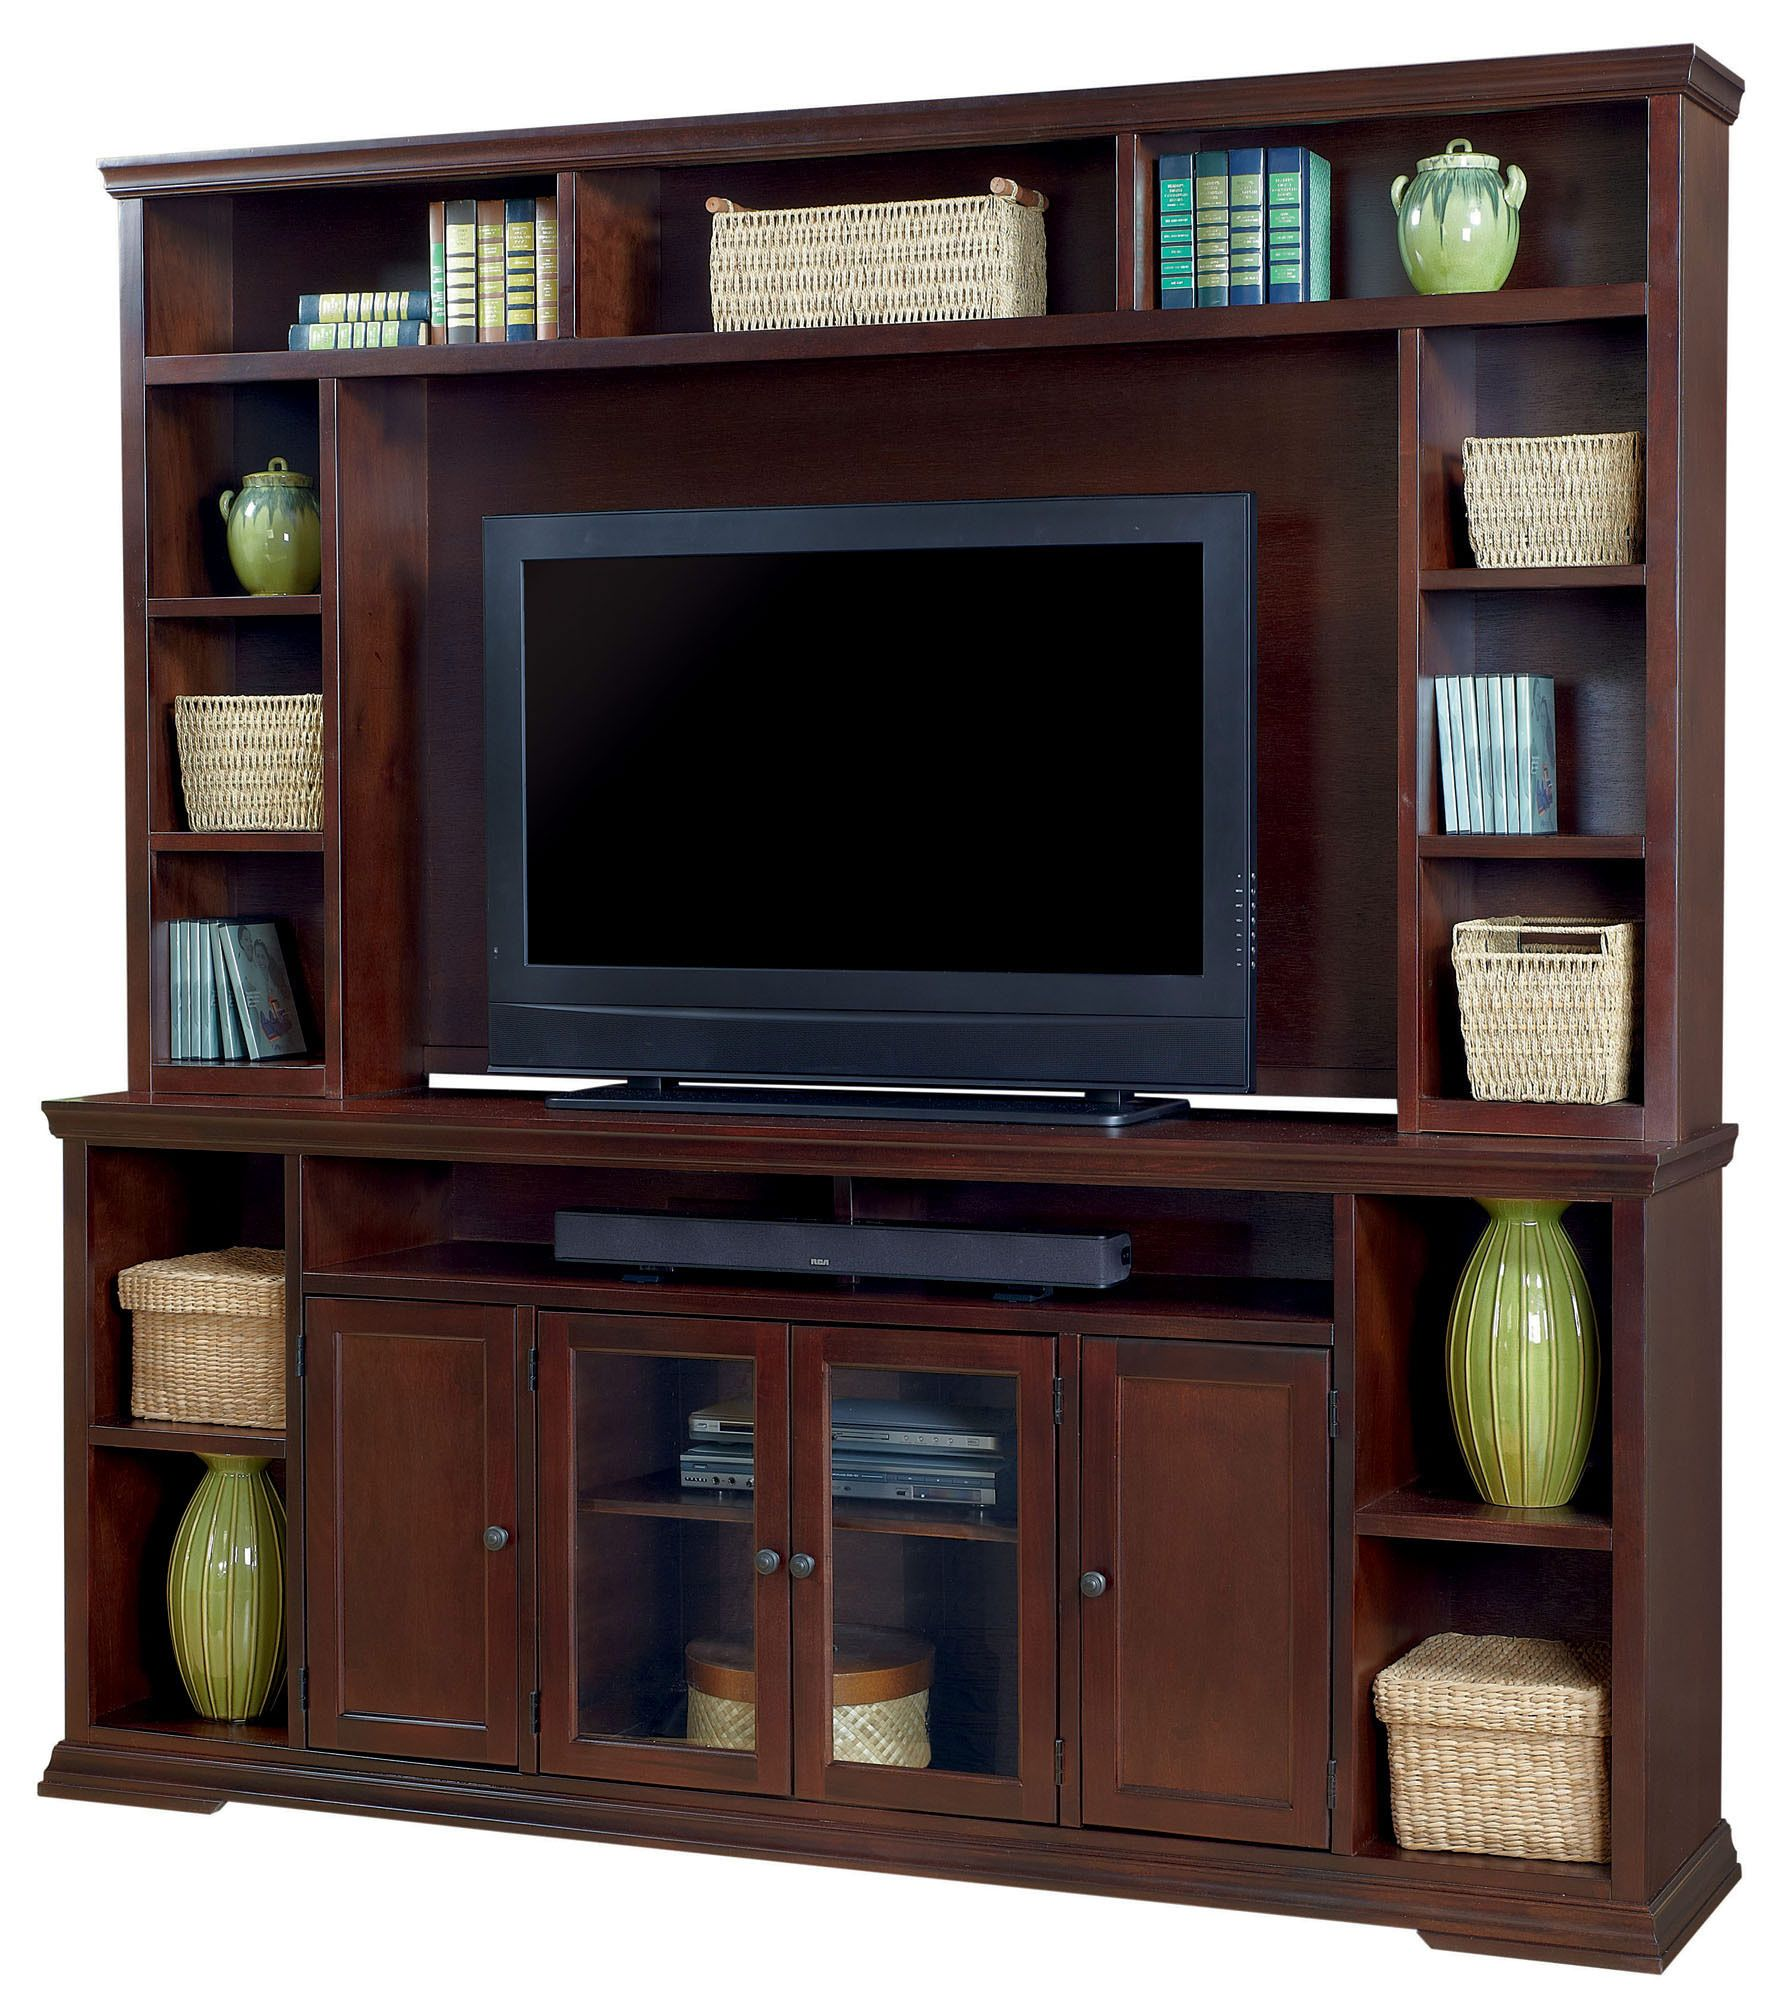 New Traditions 84 Console And Hutch Aspen Home Furniture Gallery S